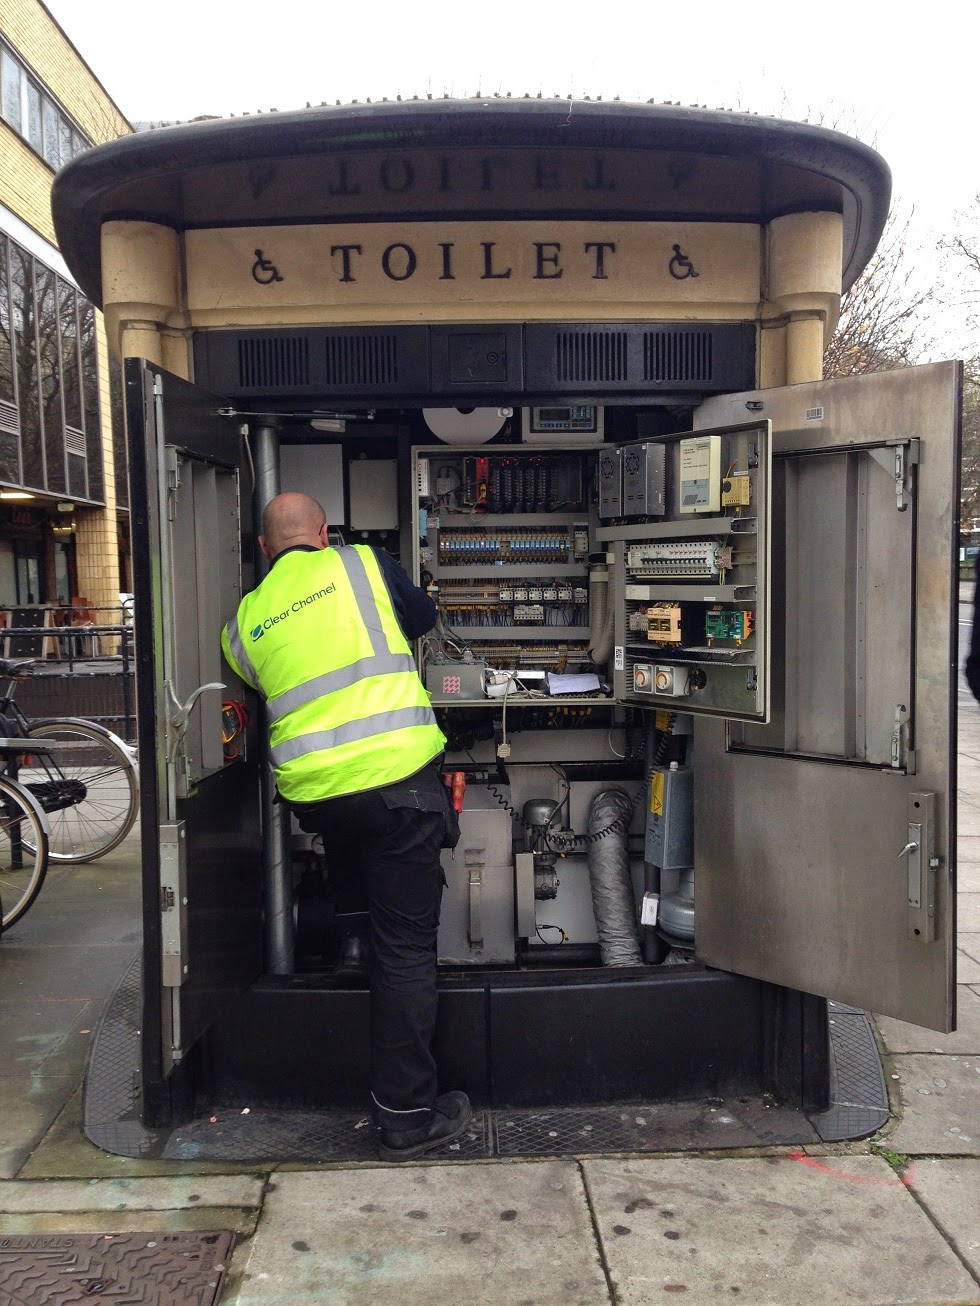 Toilet-cum-telephone exchange, Bishop's Bridge Road, London W2